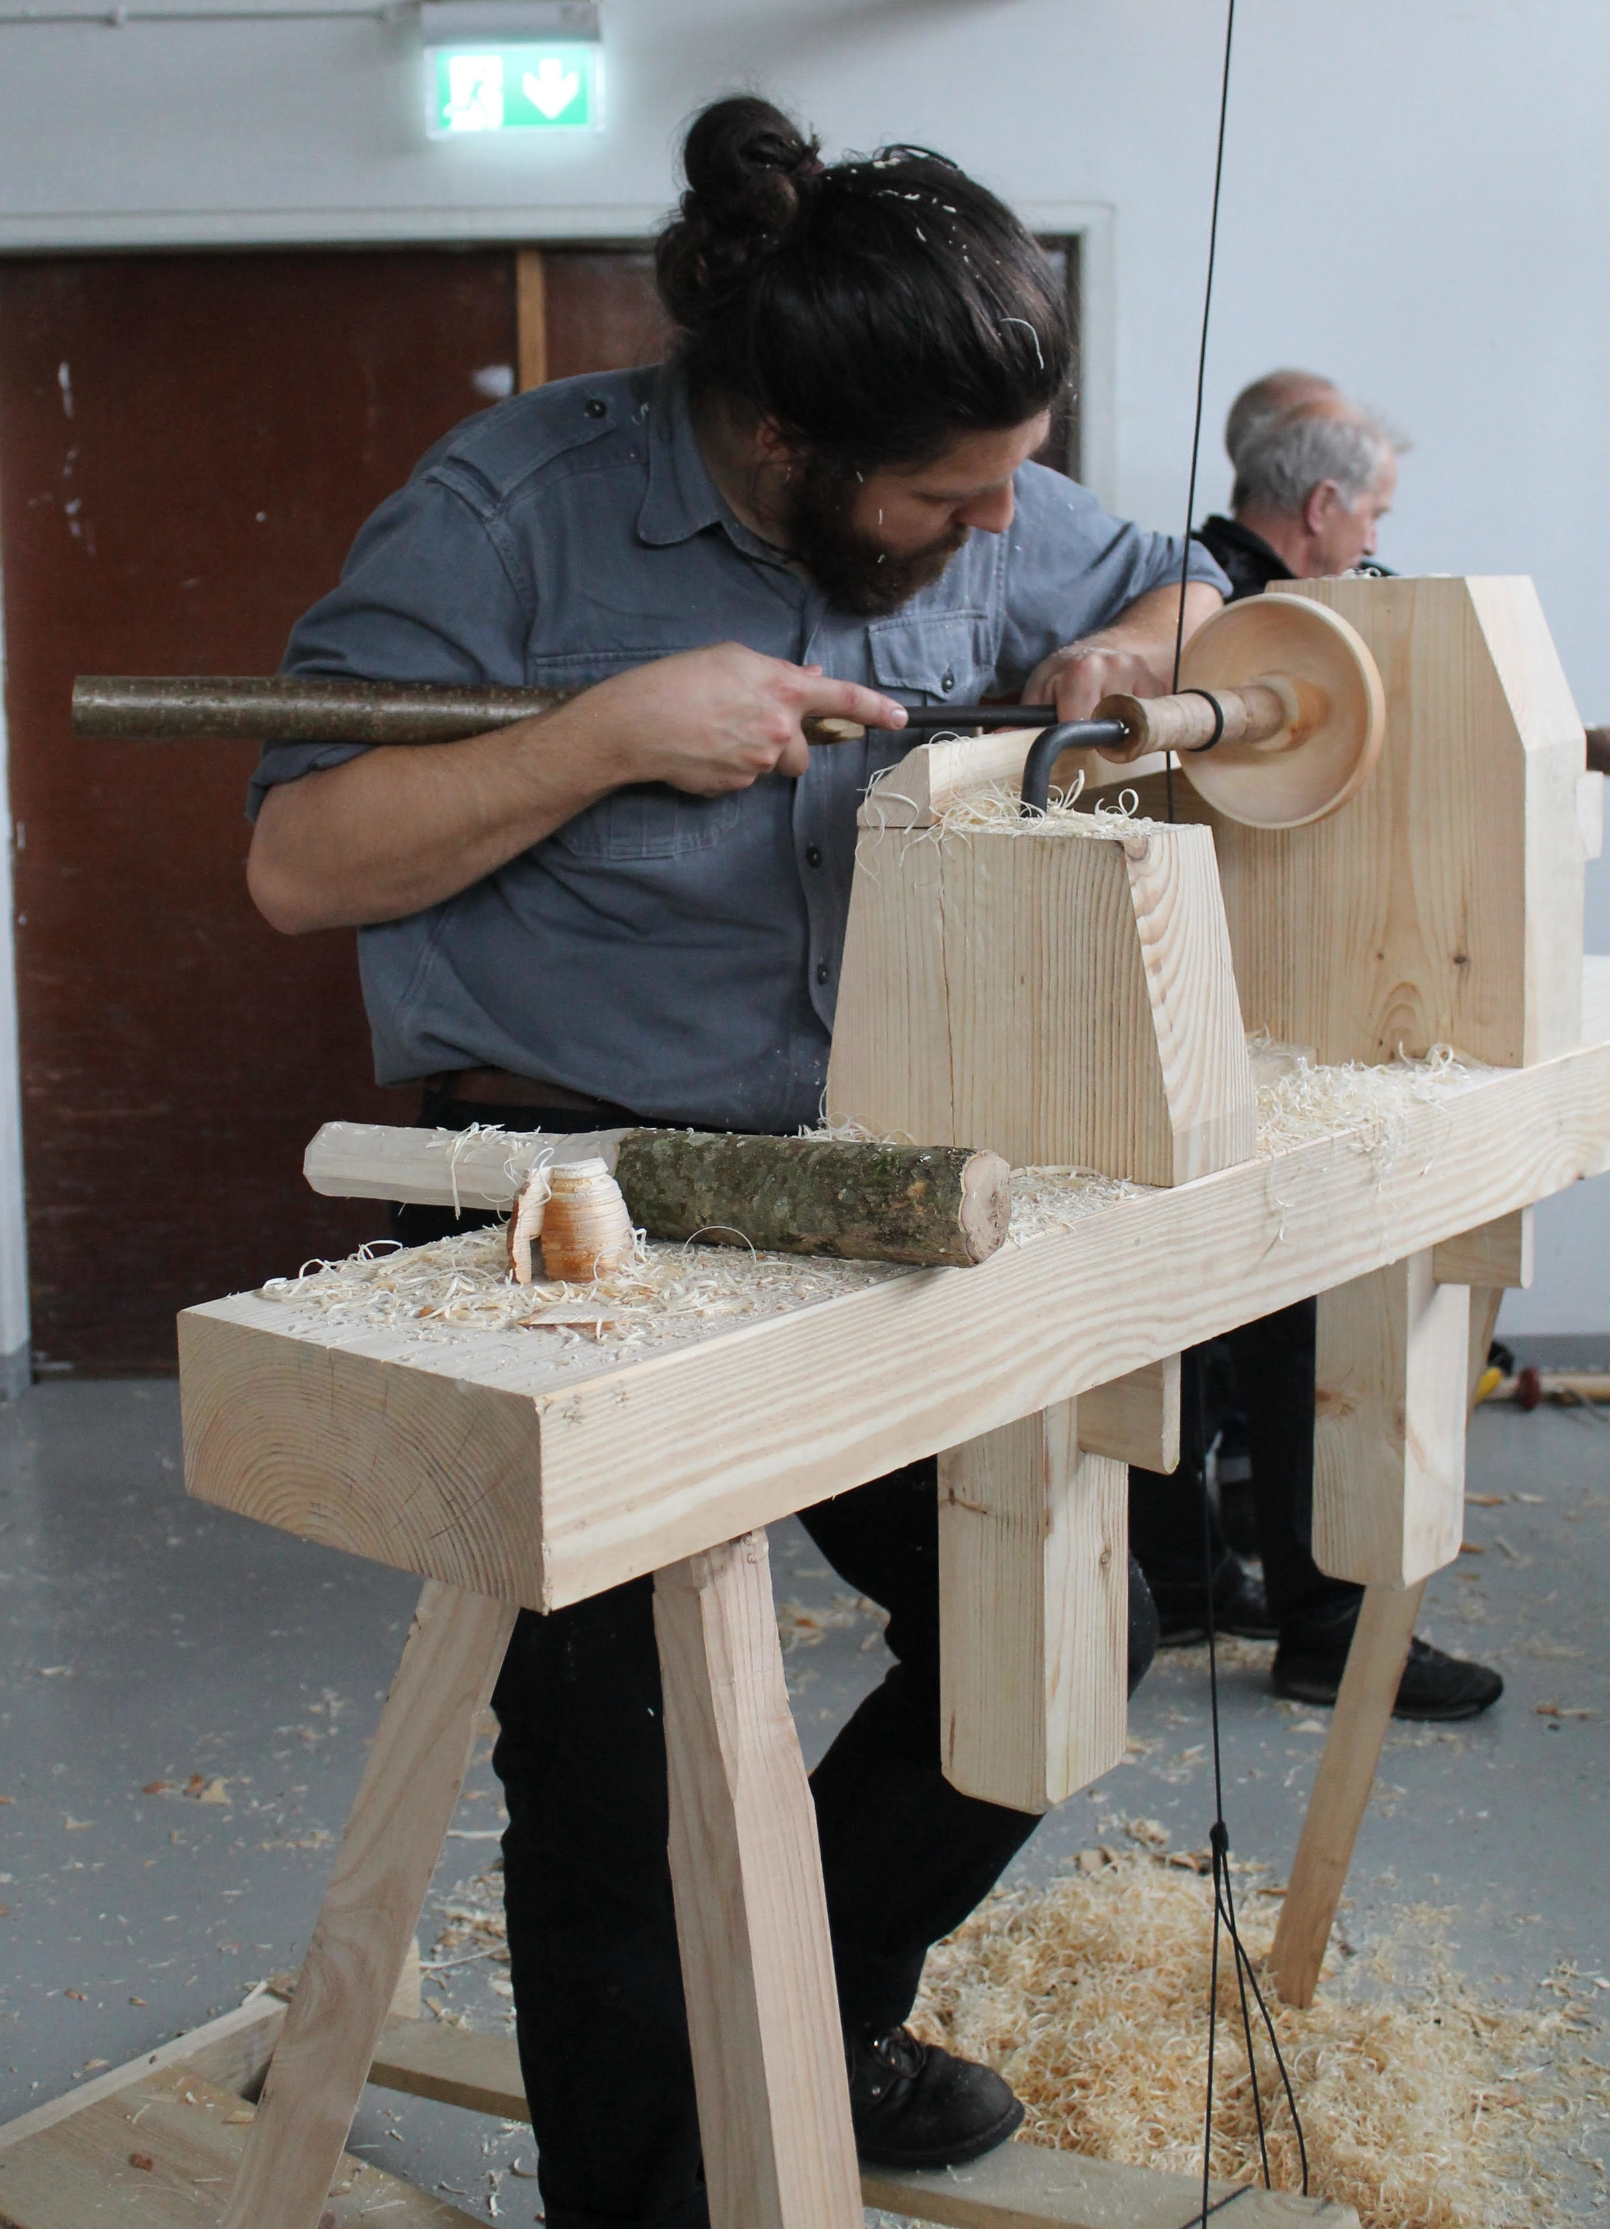 Turning on a Pole Lathe